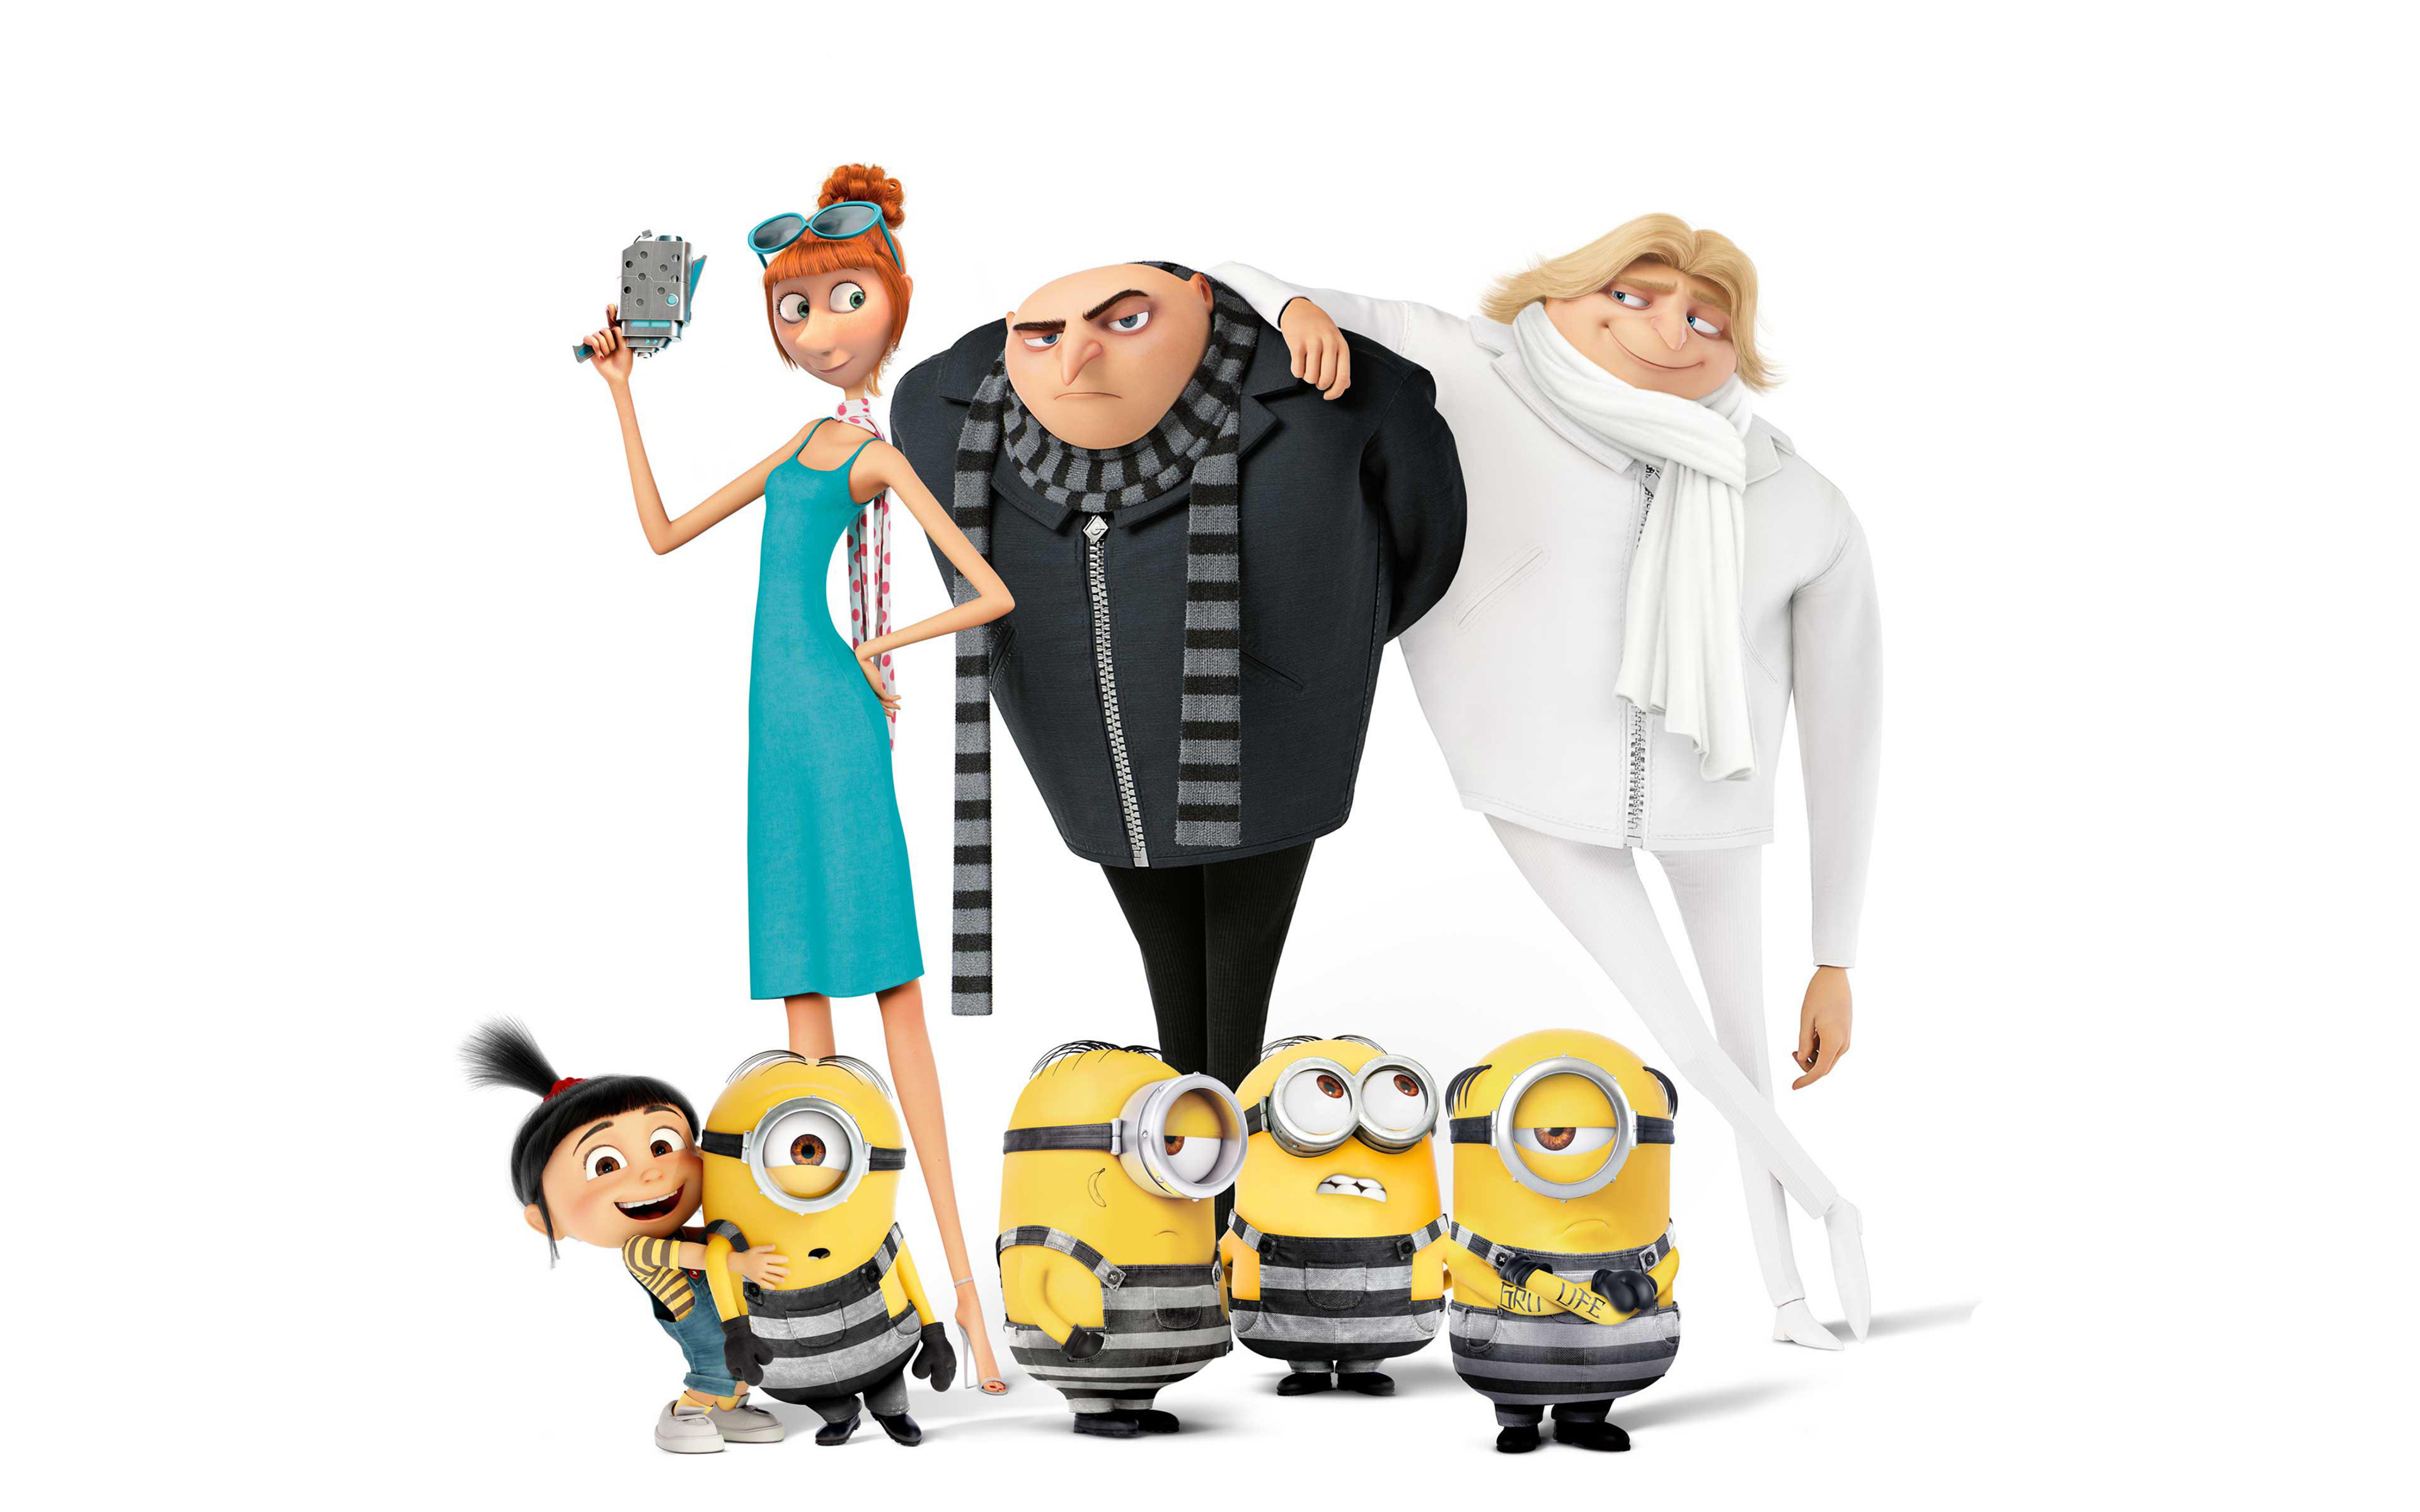 despicable me wallpaper minions 64 images - HD 3840×2400